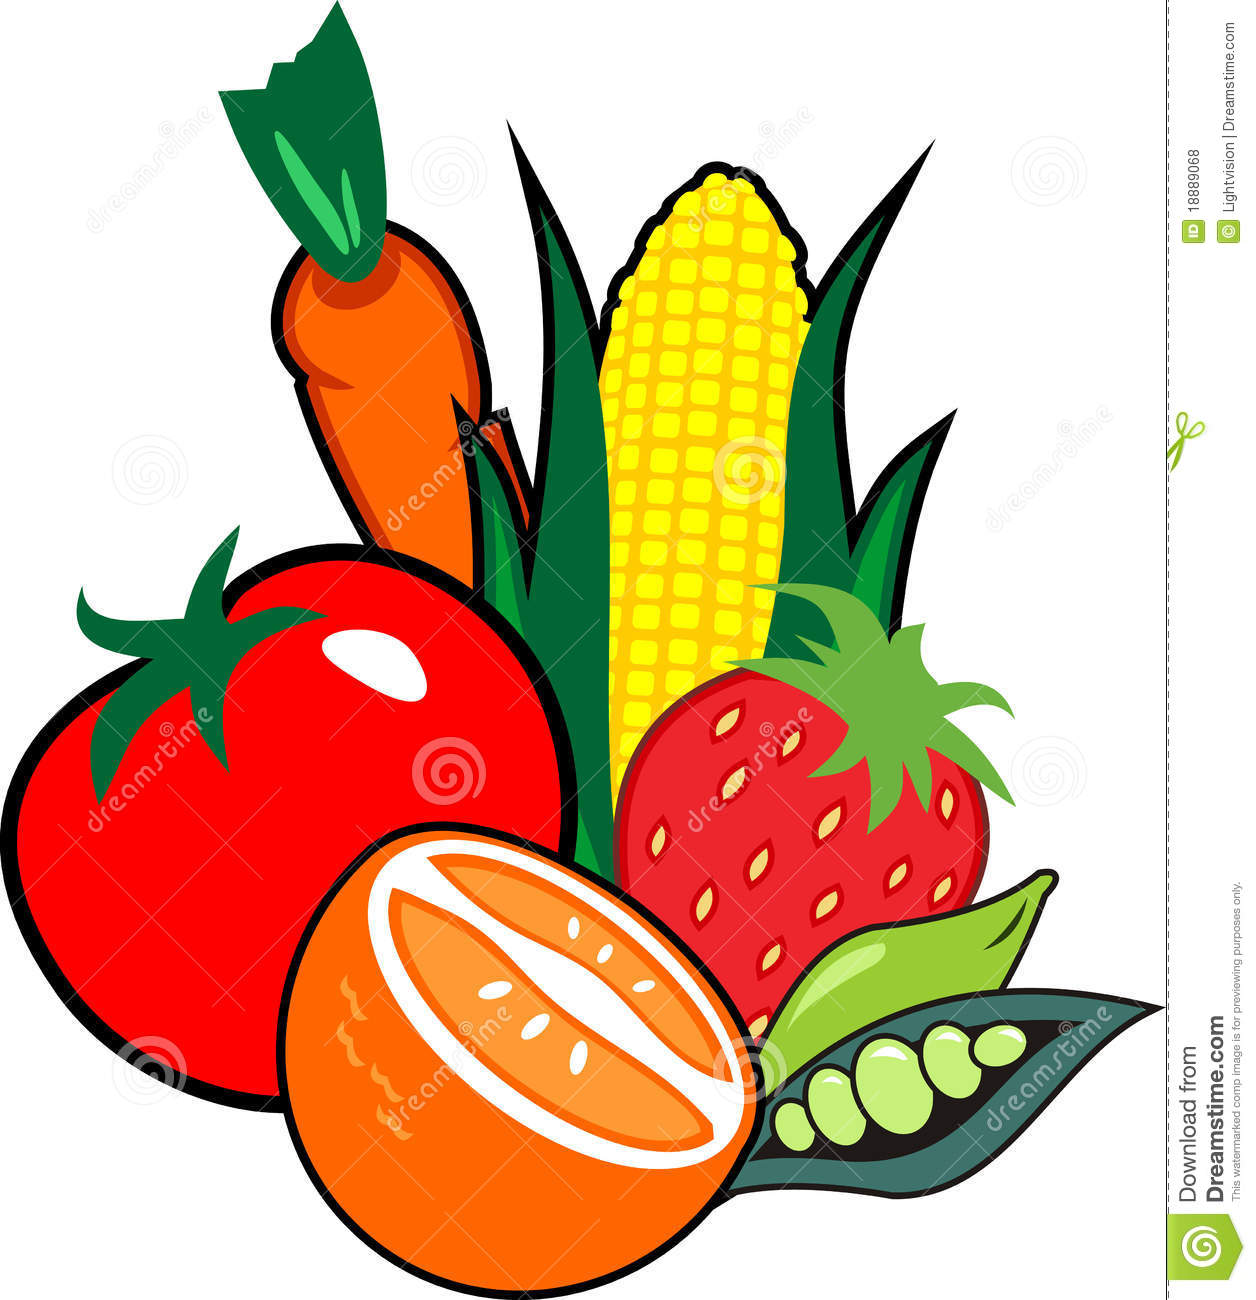 Fruits & Vegetables clipart #4